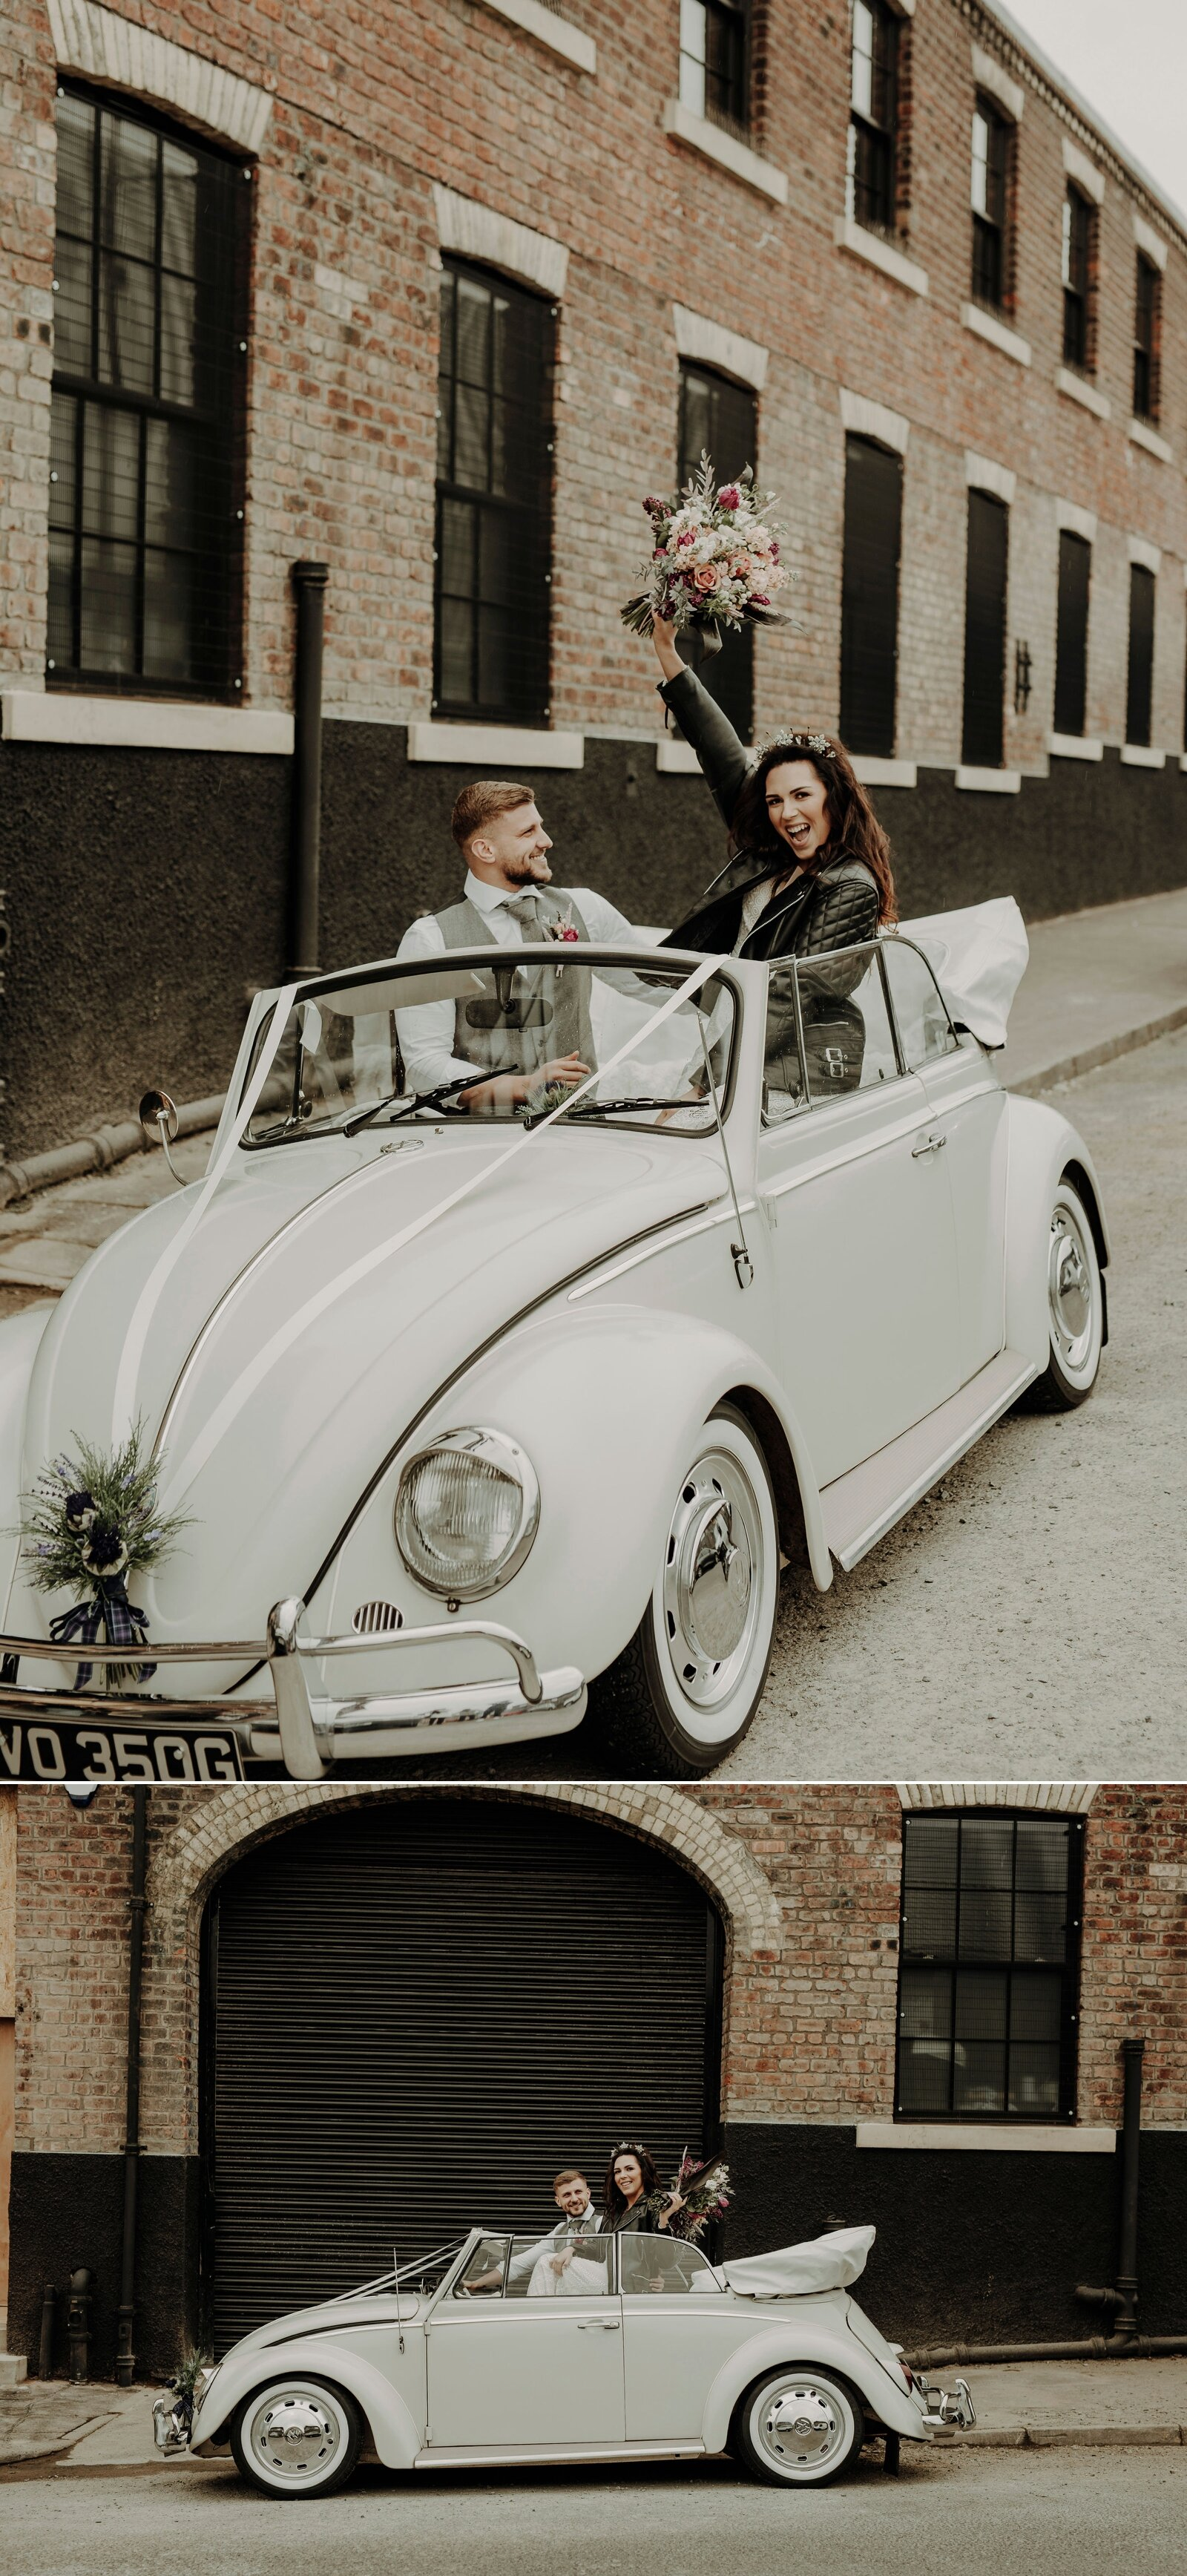 Laura will soon be arriving at The Engine Works in this cute beetle from  Tartan Dubs 4 Hire   Image by  Lena Sabala  from a styled shoot ft.  Wedding Flowers by Susan  //  Revify  //  Make Up by Leigh Blaney  //  Owsianka Hair  //  Unbridaled Boutique  //  The Unlikely Painter  //  MacGregor + MacDuff  // Models Anna + Ryan